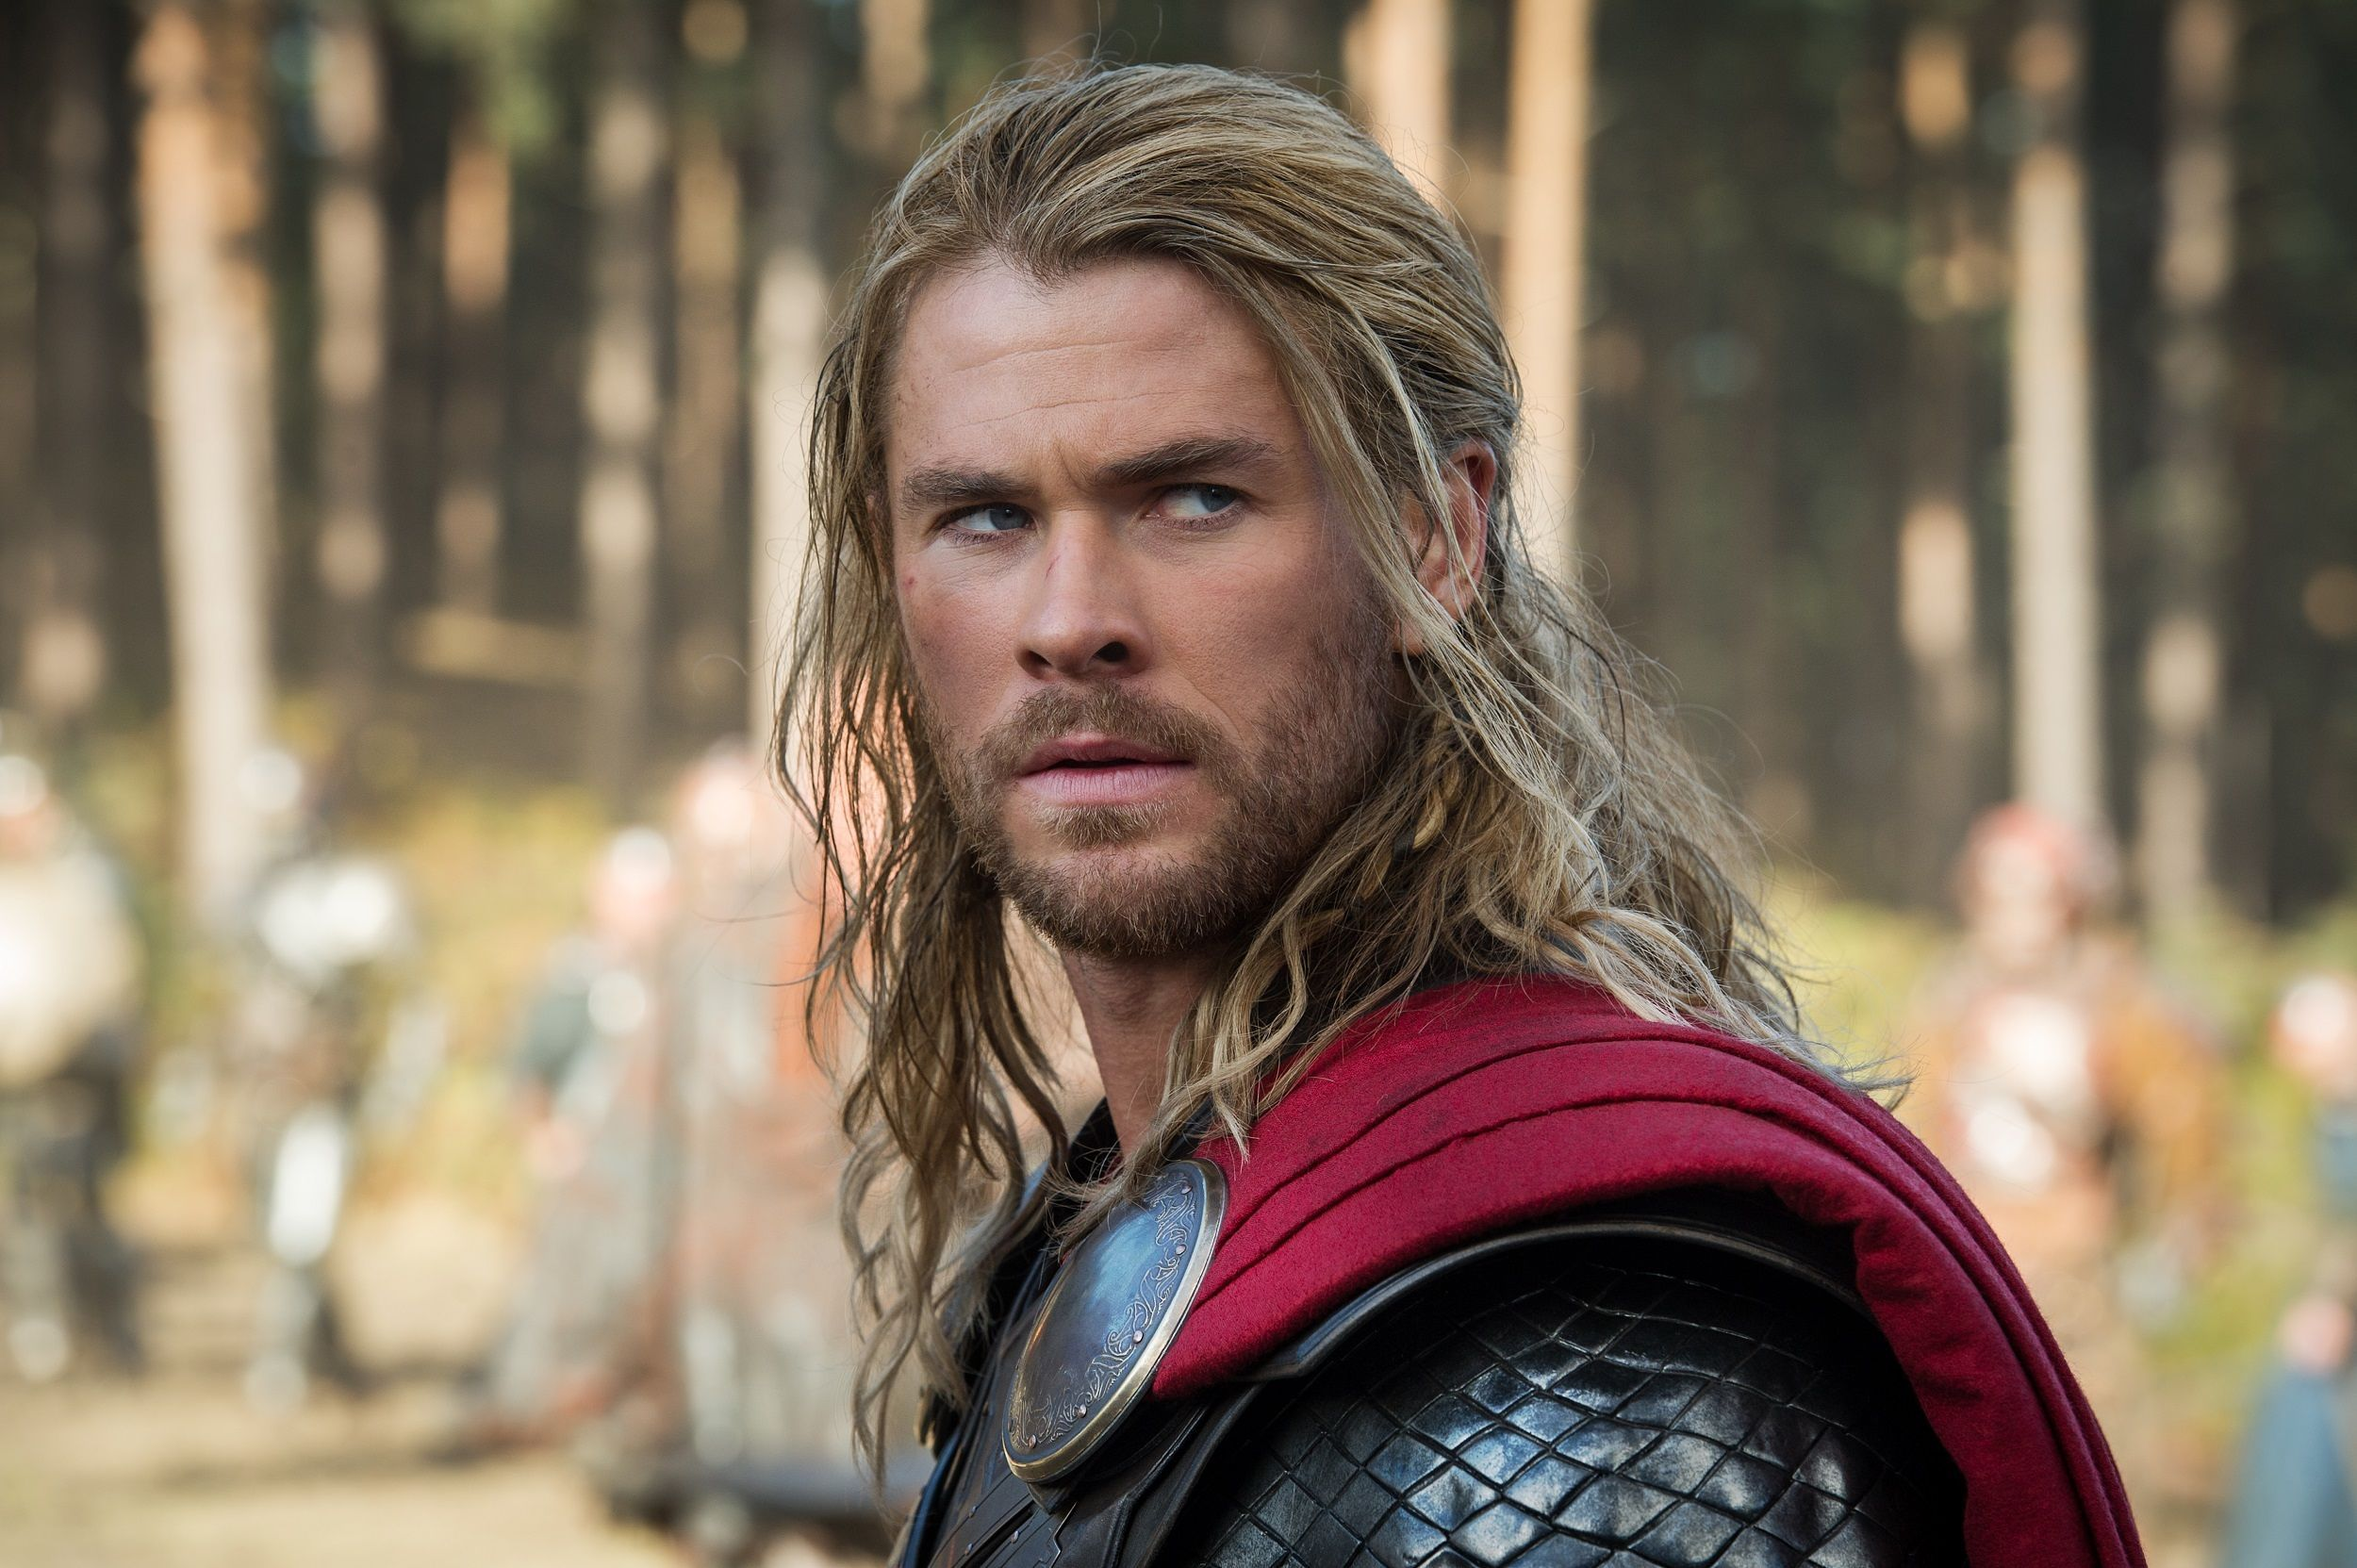 chris hemsworth with long hair in character thor | men hairstyle